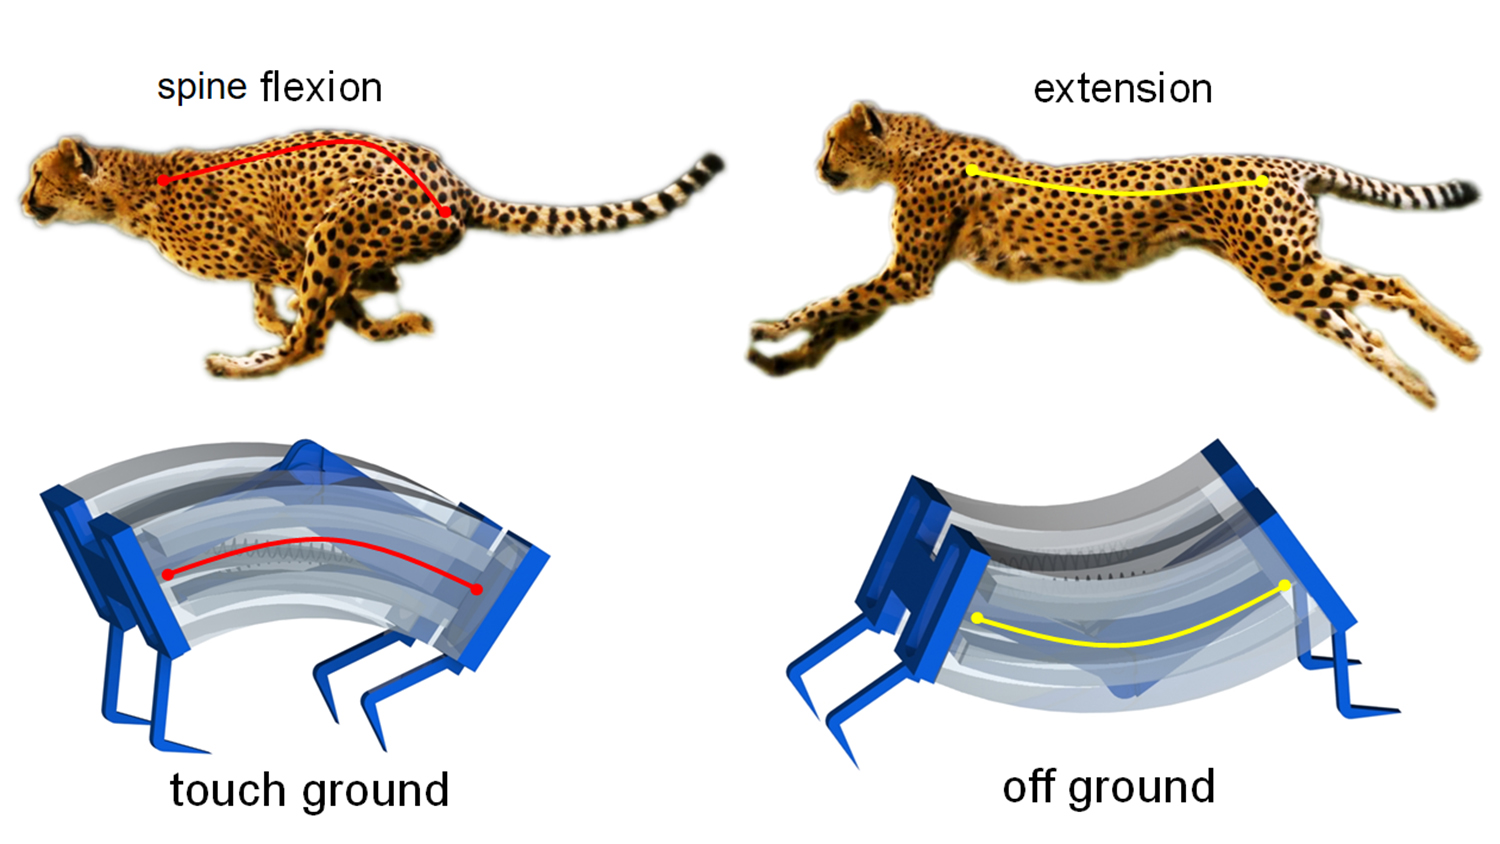 The image compares the running of a cheetah and the robot, both of which flex and then extend their spine as they move